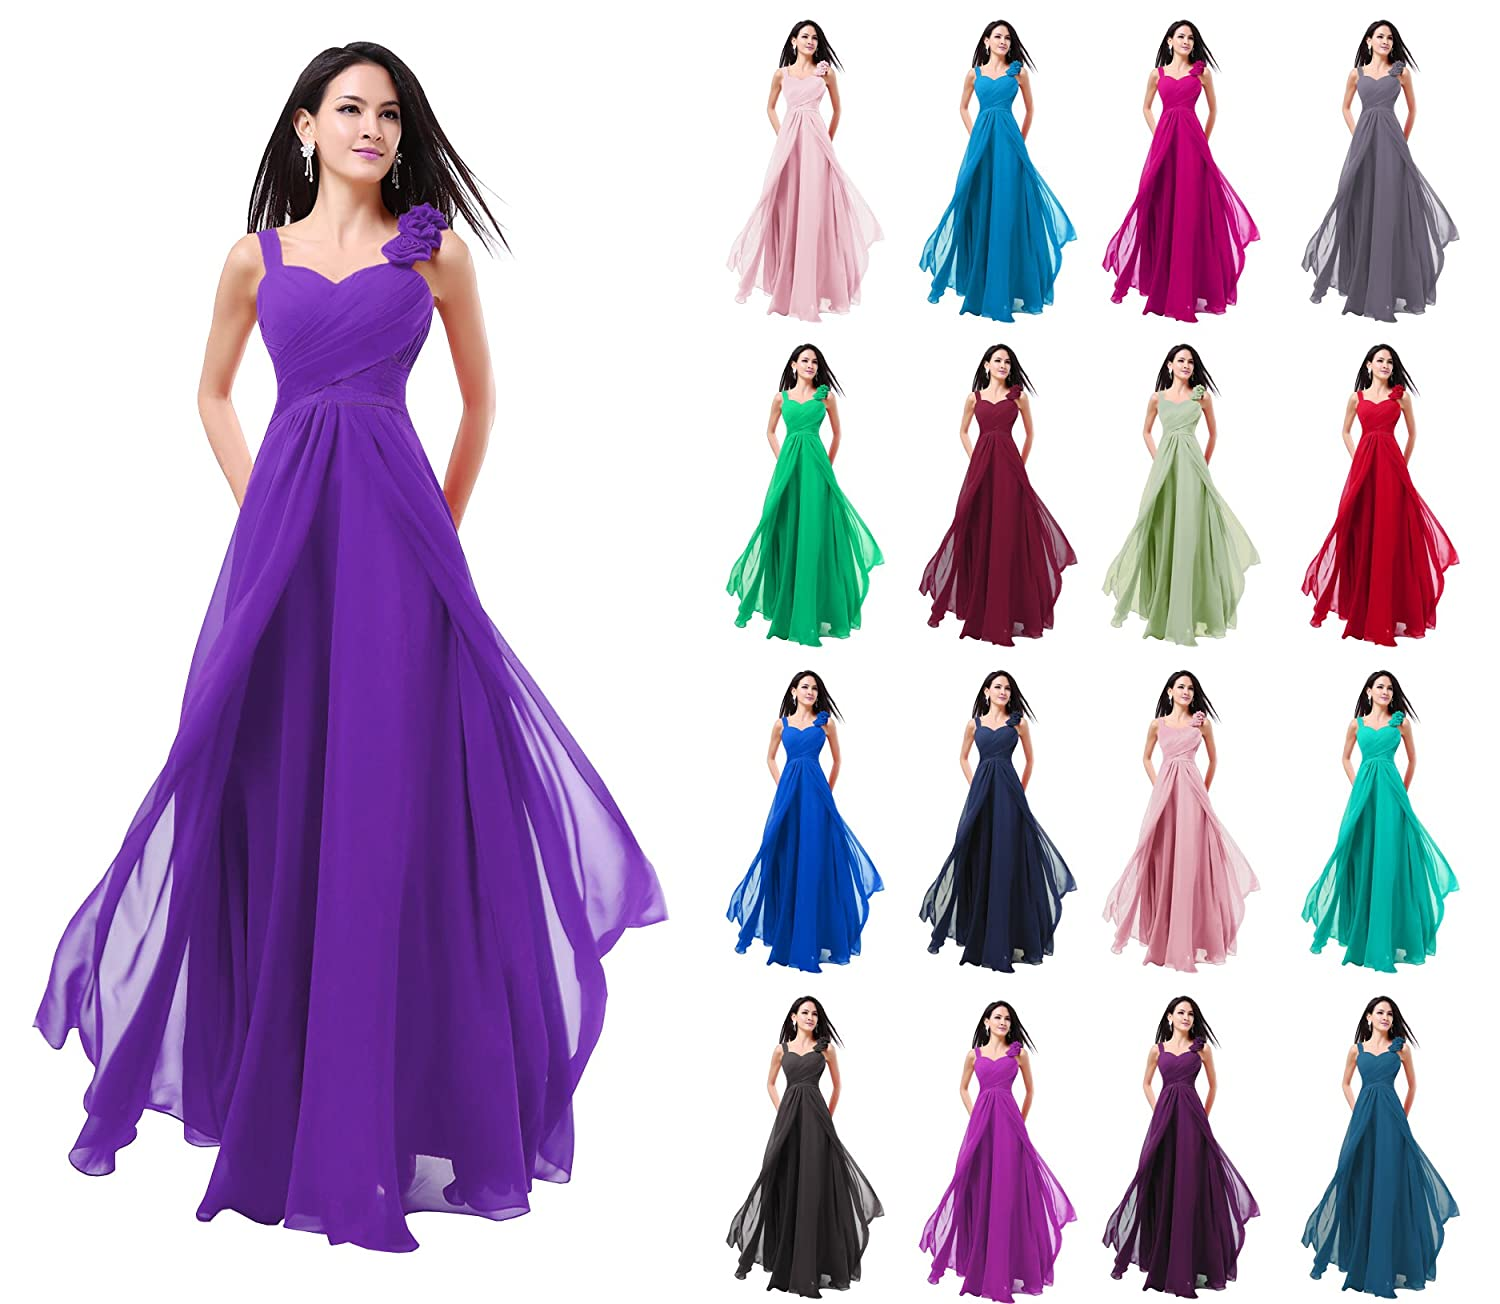 New Formal Long Evening Ball Gown Party Prom Bridesmaid Dress -SZ ...